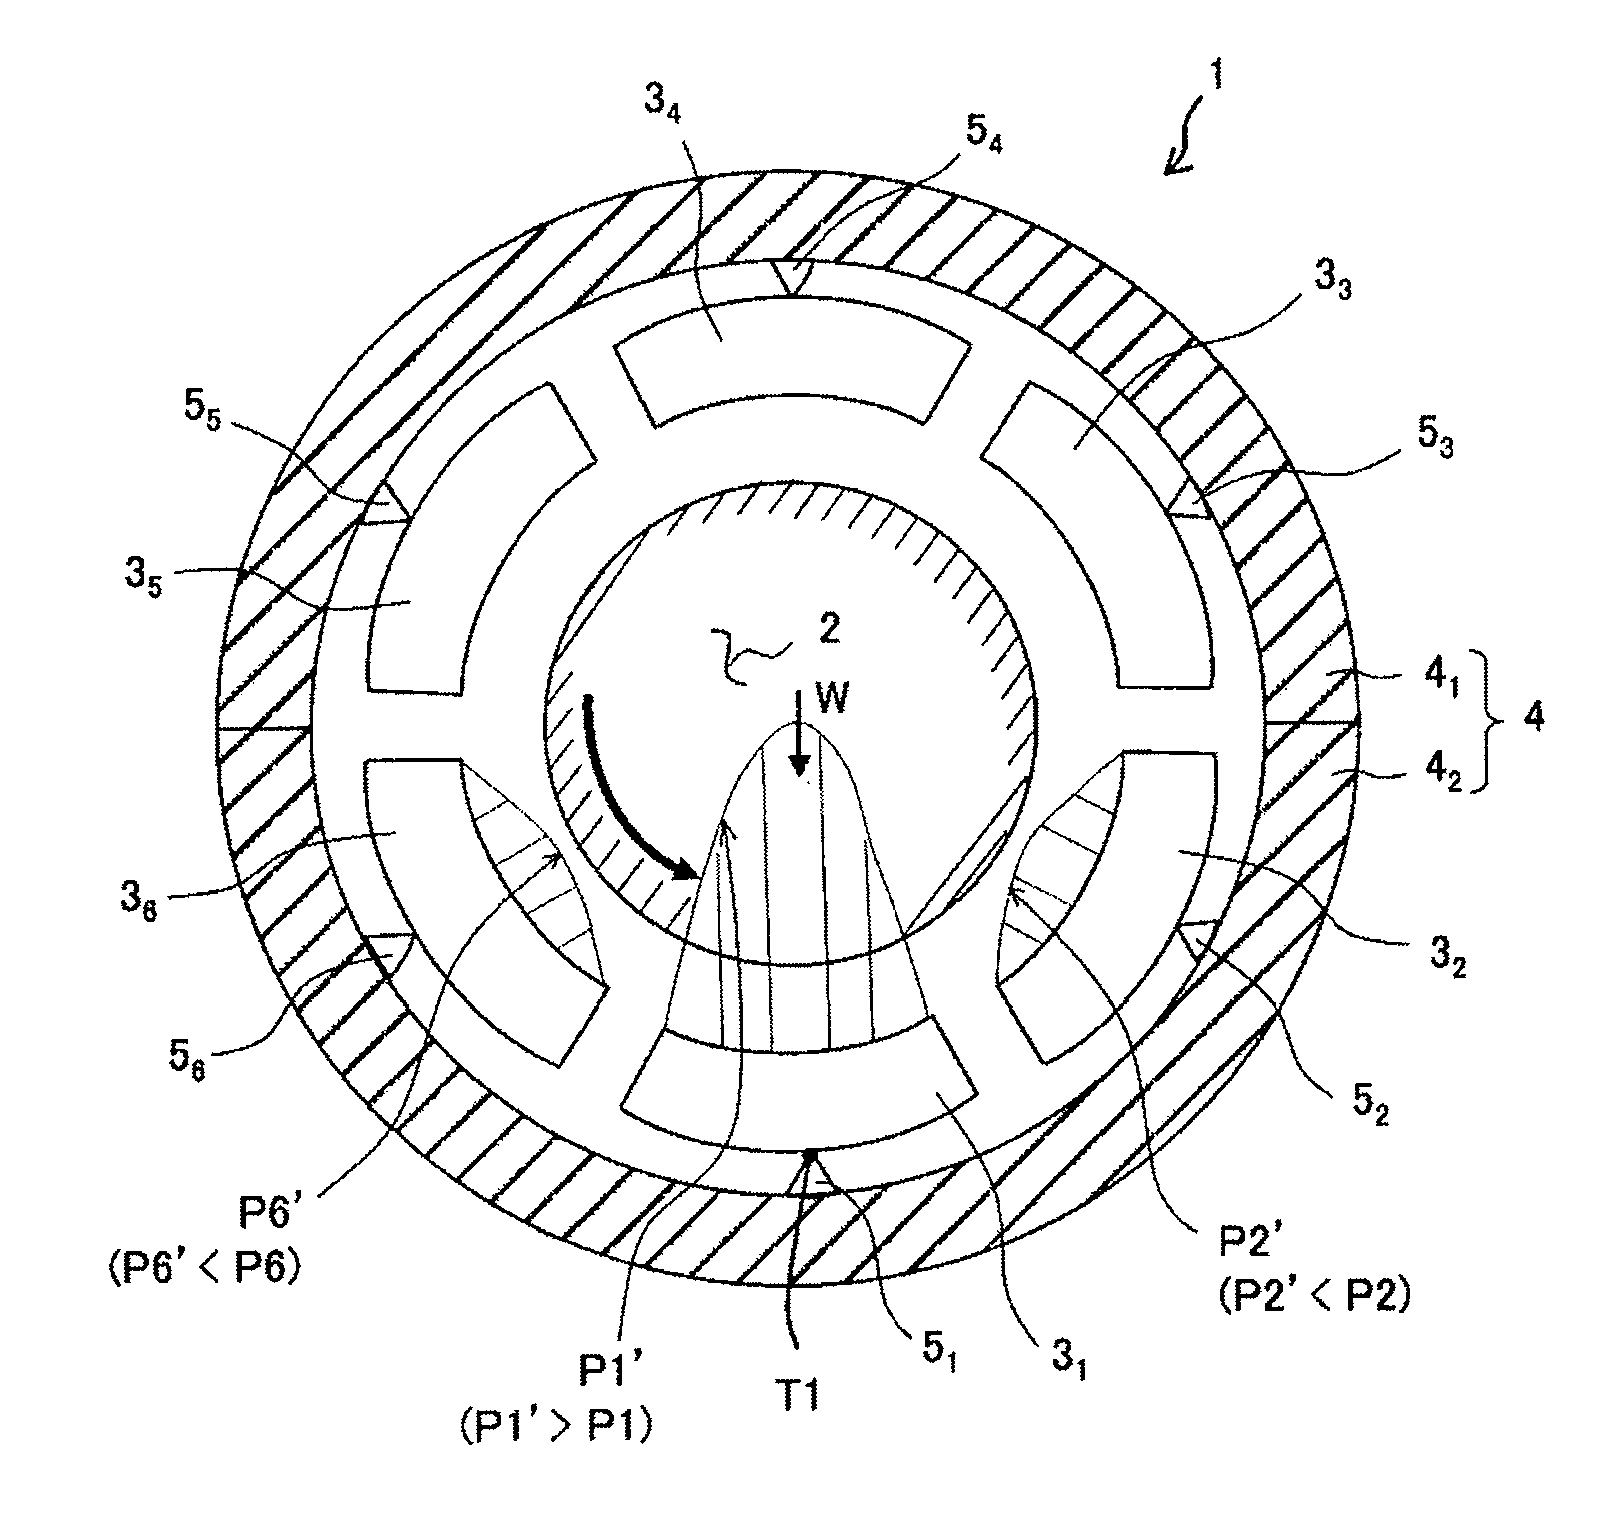 Patent US Tilting pad journal bearing and steam